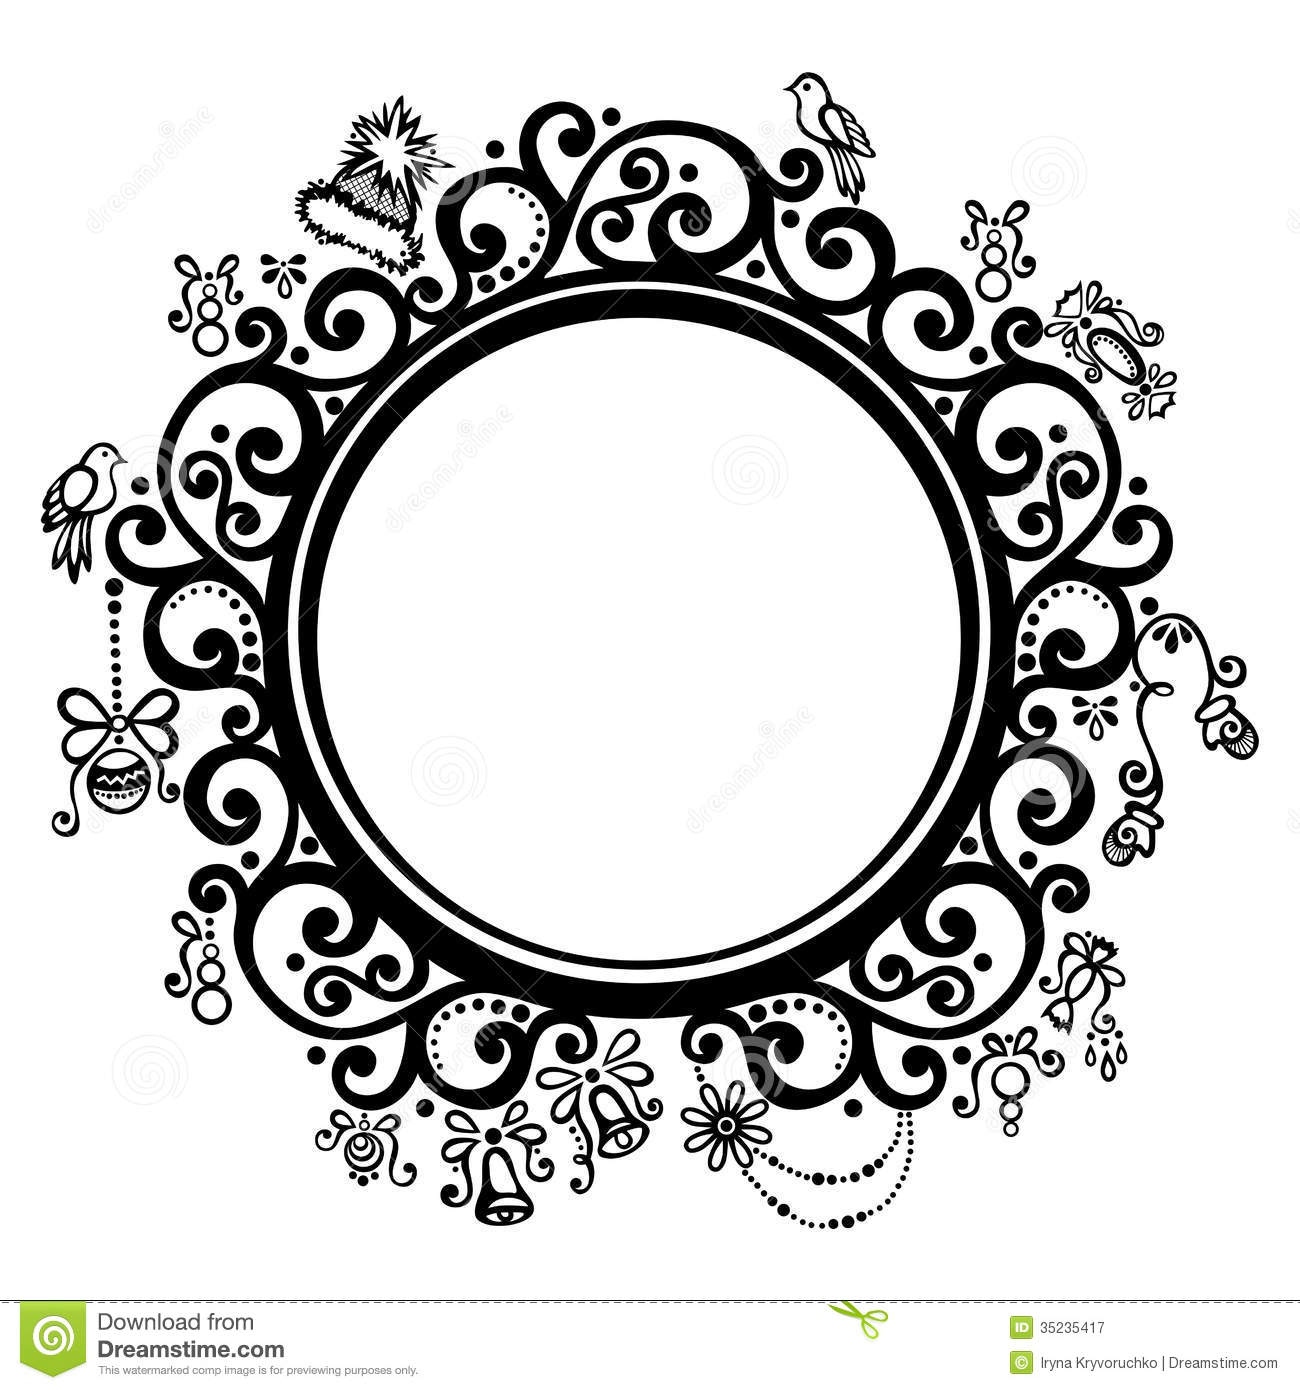 10 Free Vector Ornate Circle Frame Images - Floral ...